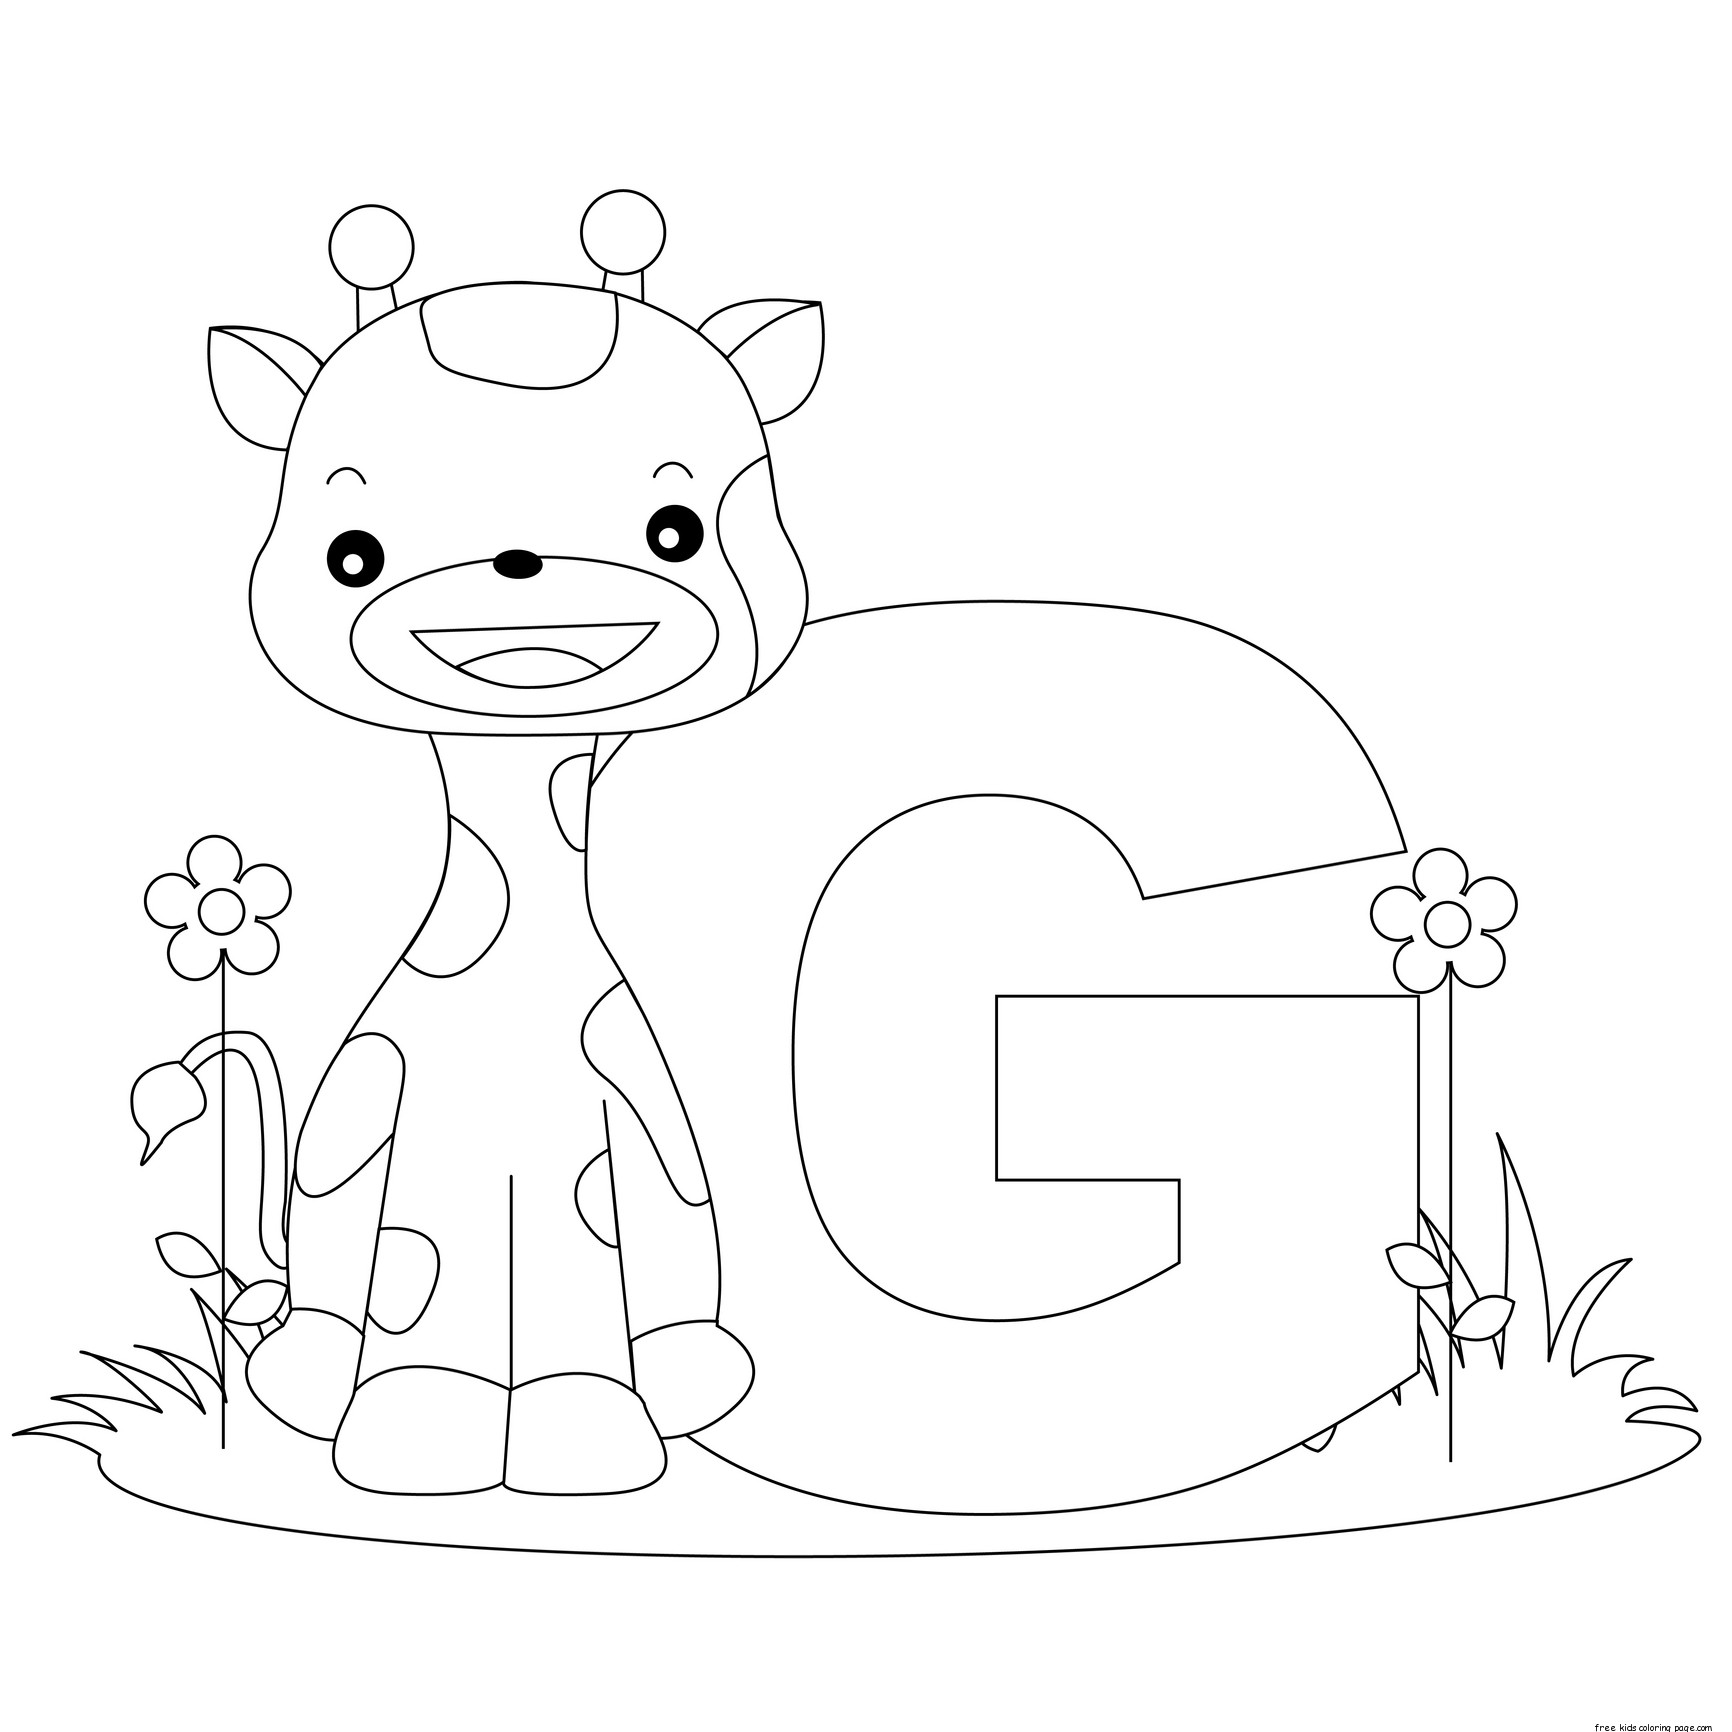 Alphabet letter g for preschool activities worksheetsFree – Letter G Worksheets for Kindergarten